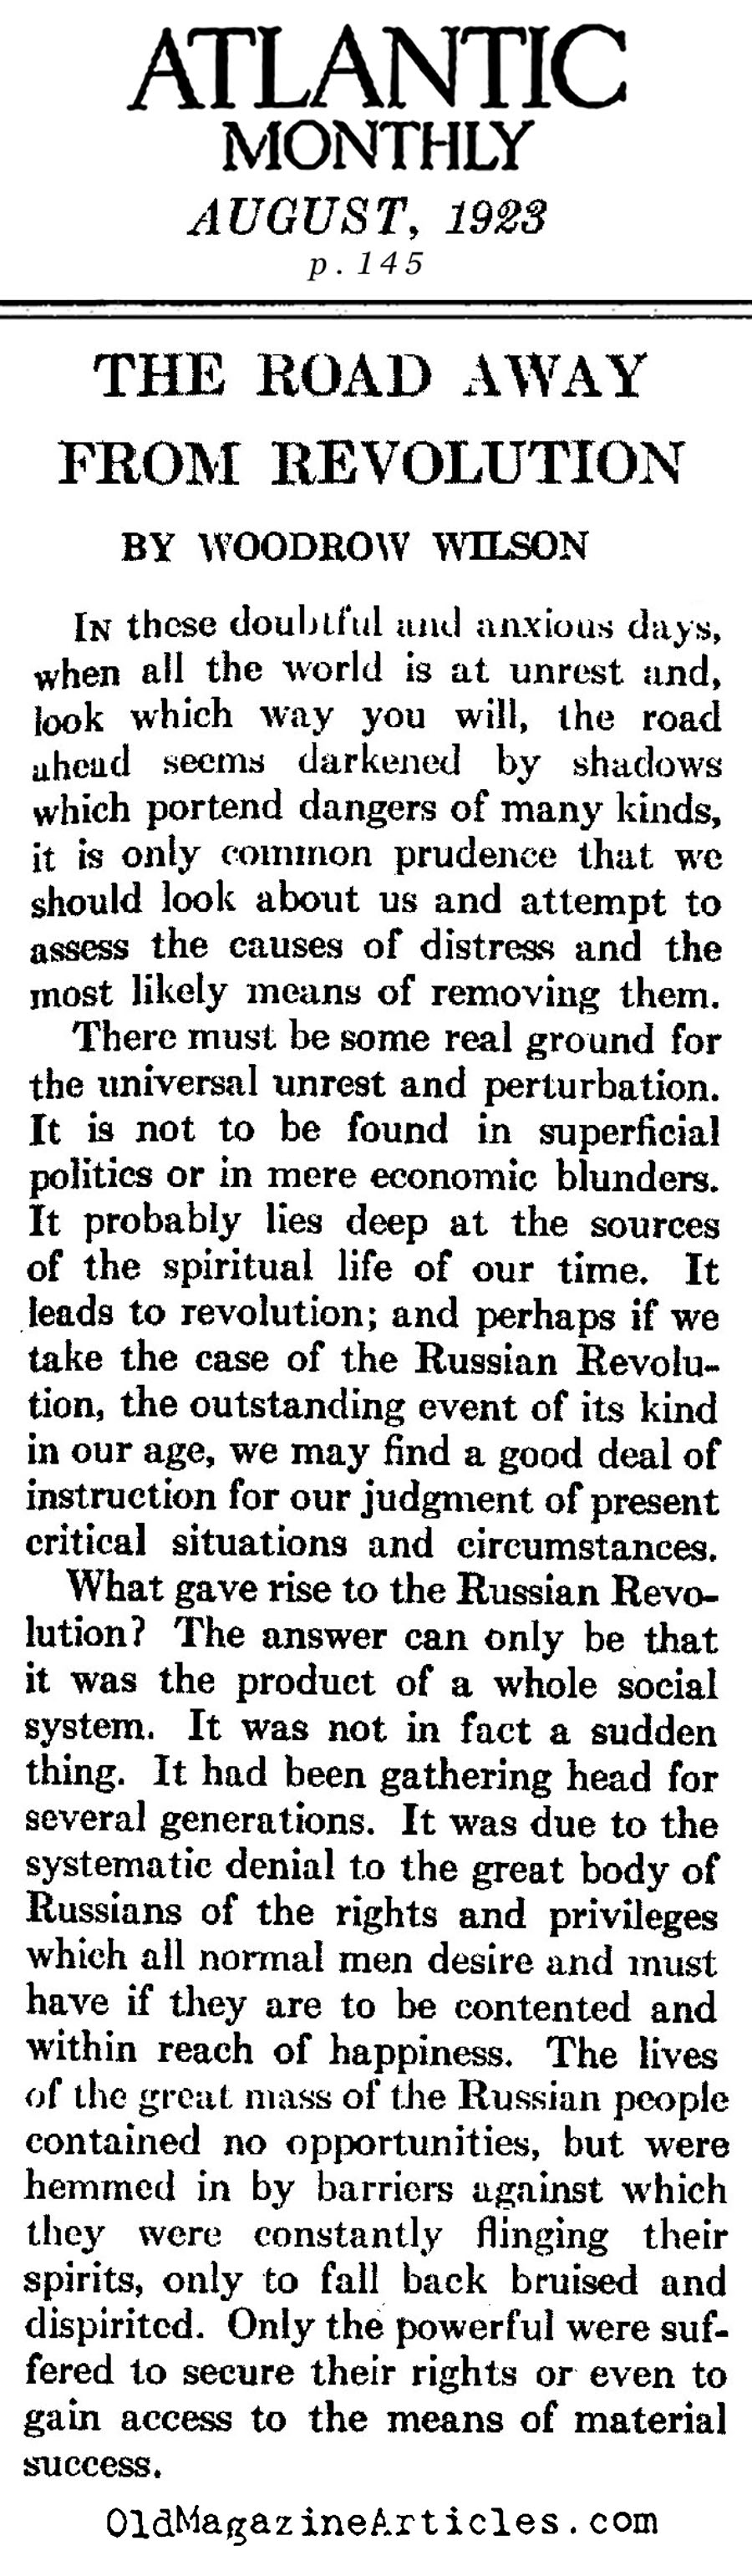 woodrow wilson response to the russian revolution woodrow woodrow wilson on the russian revolution and the red scare atlantic monthly 1923